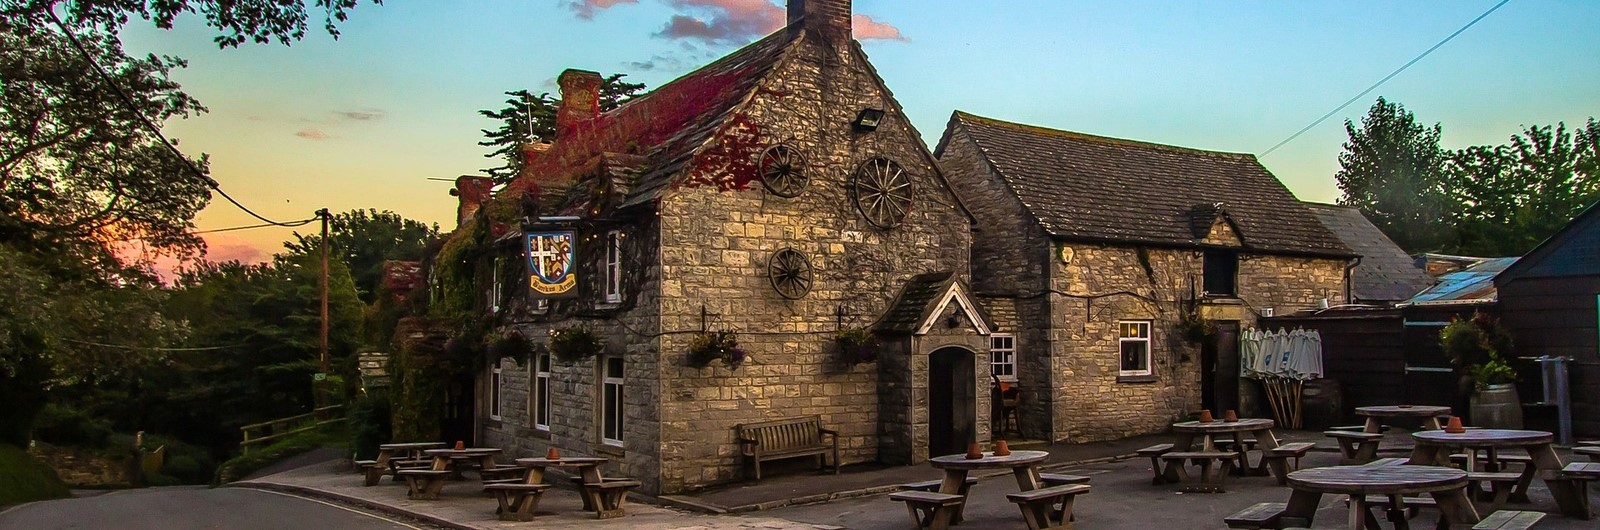 city header england village